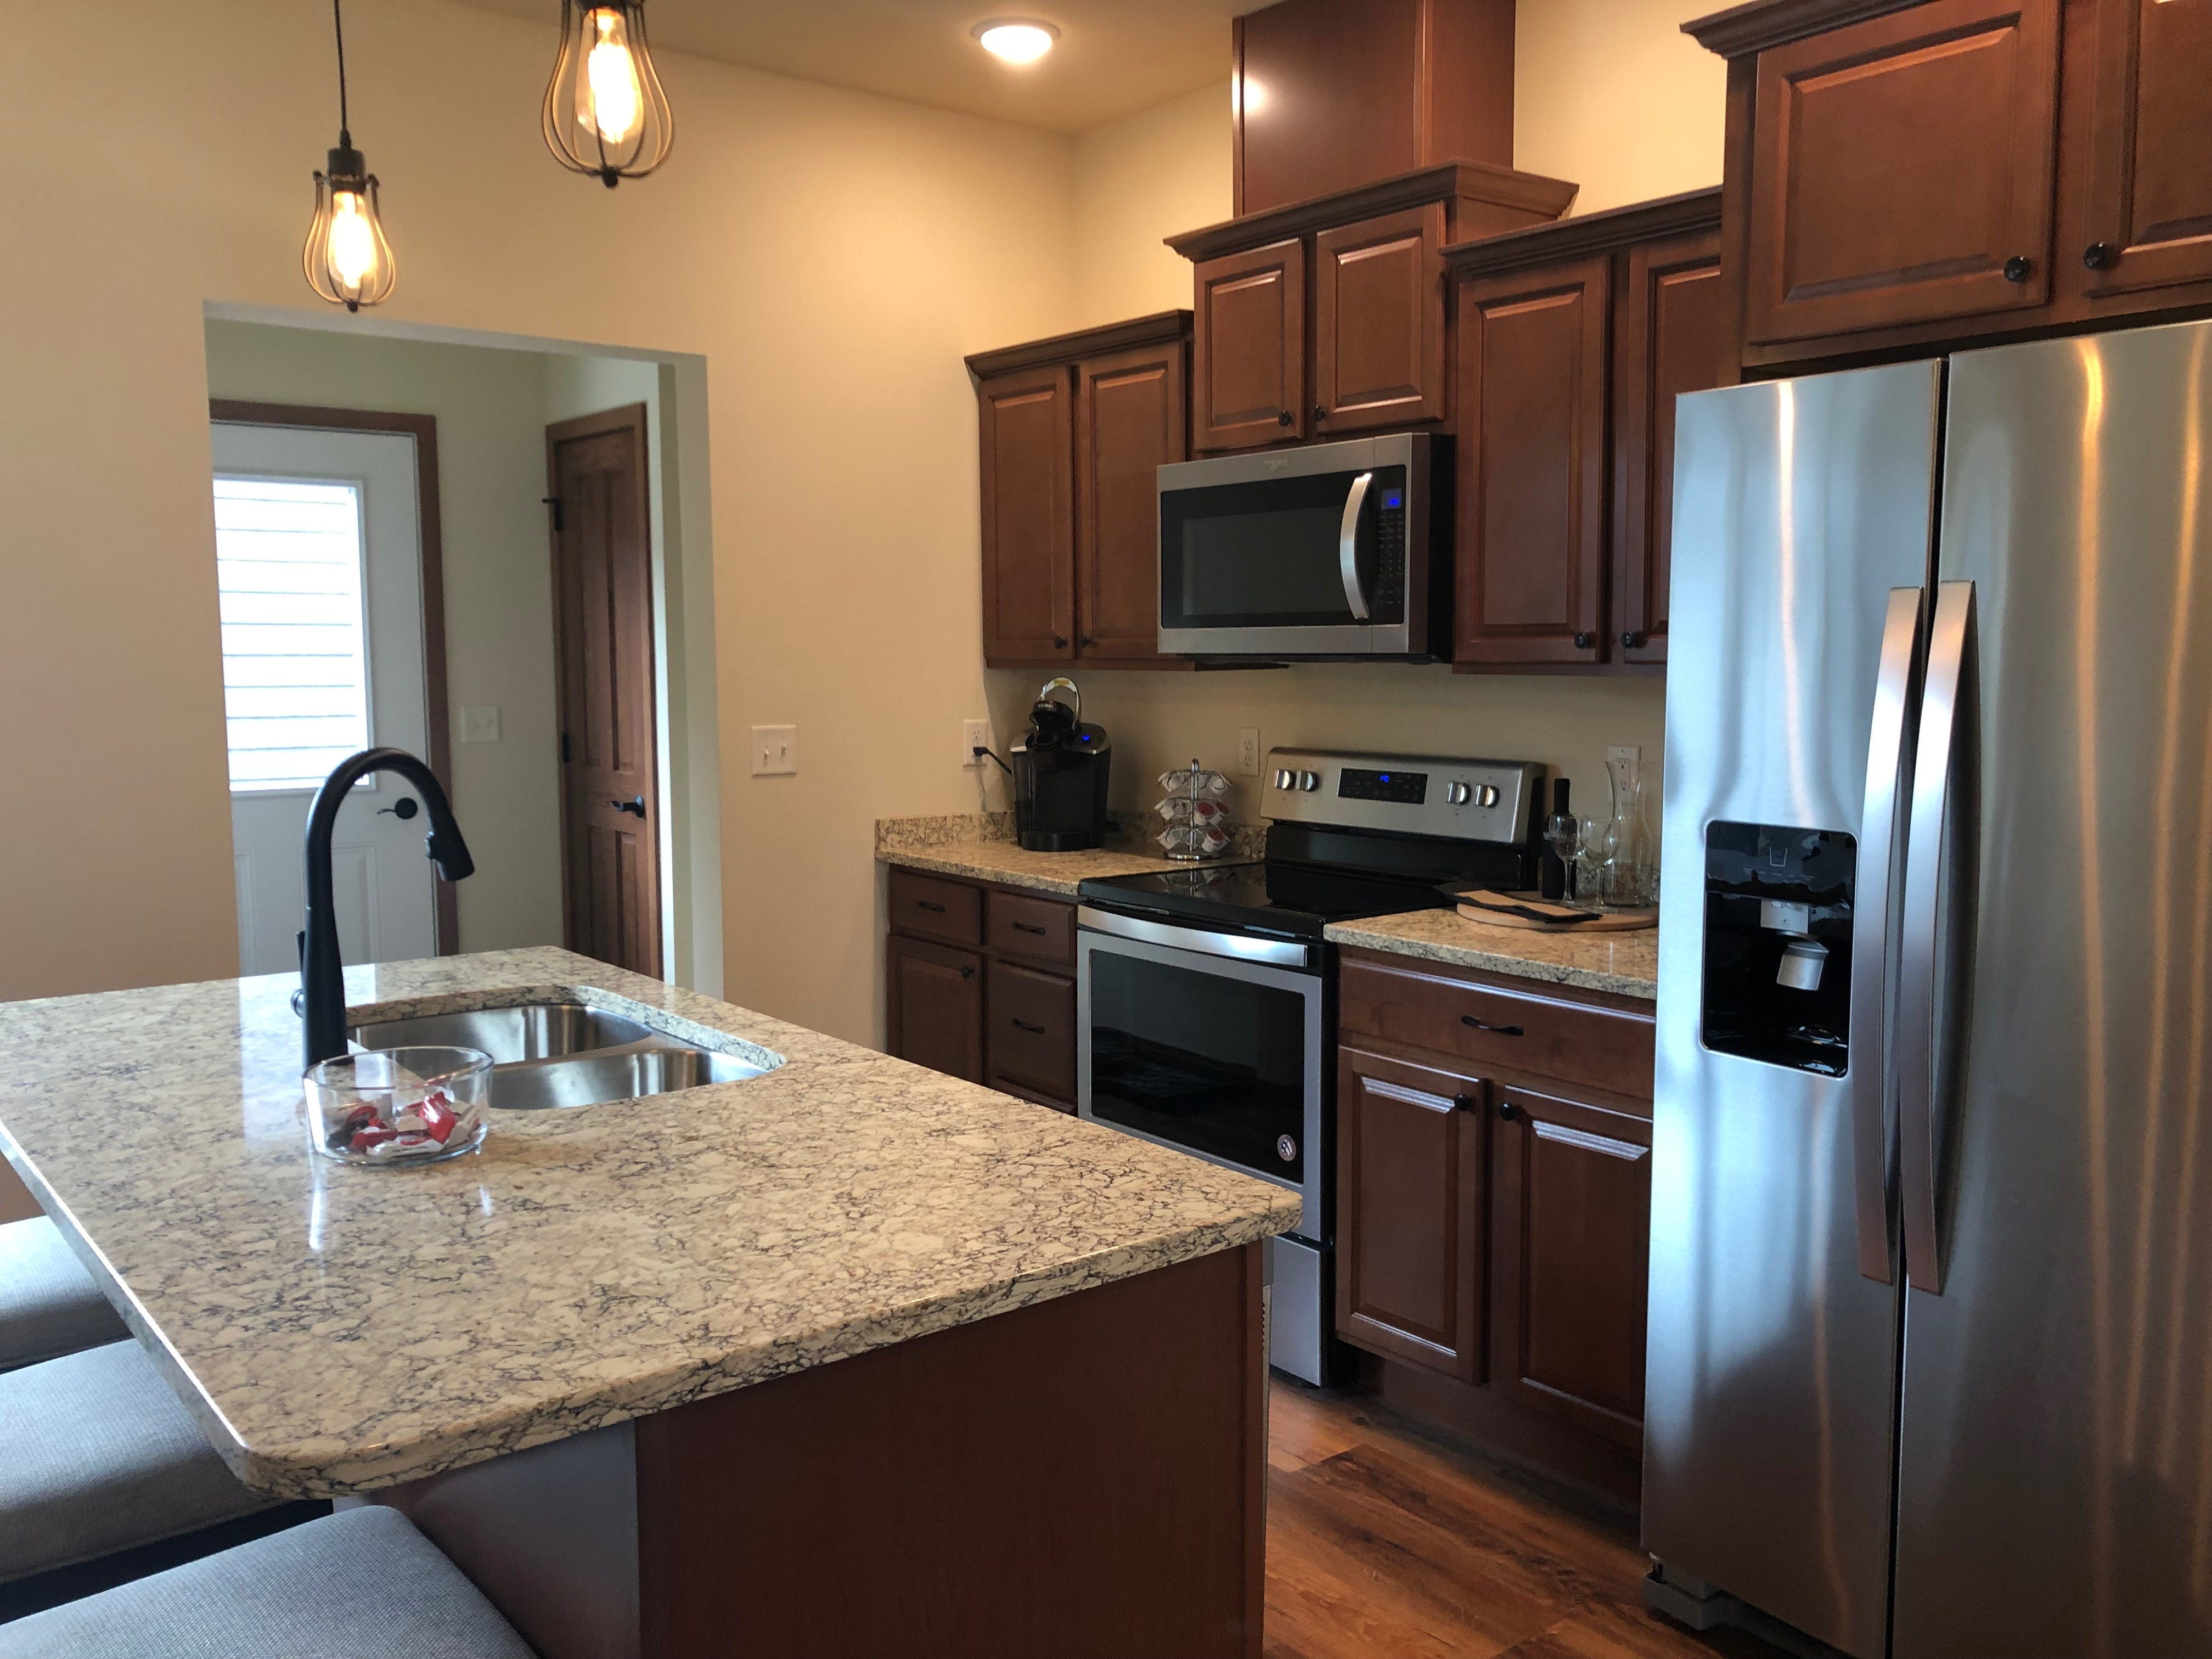 A kitchen in the RIver East Town Homes on Third Street in Wausau.